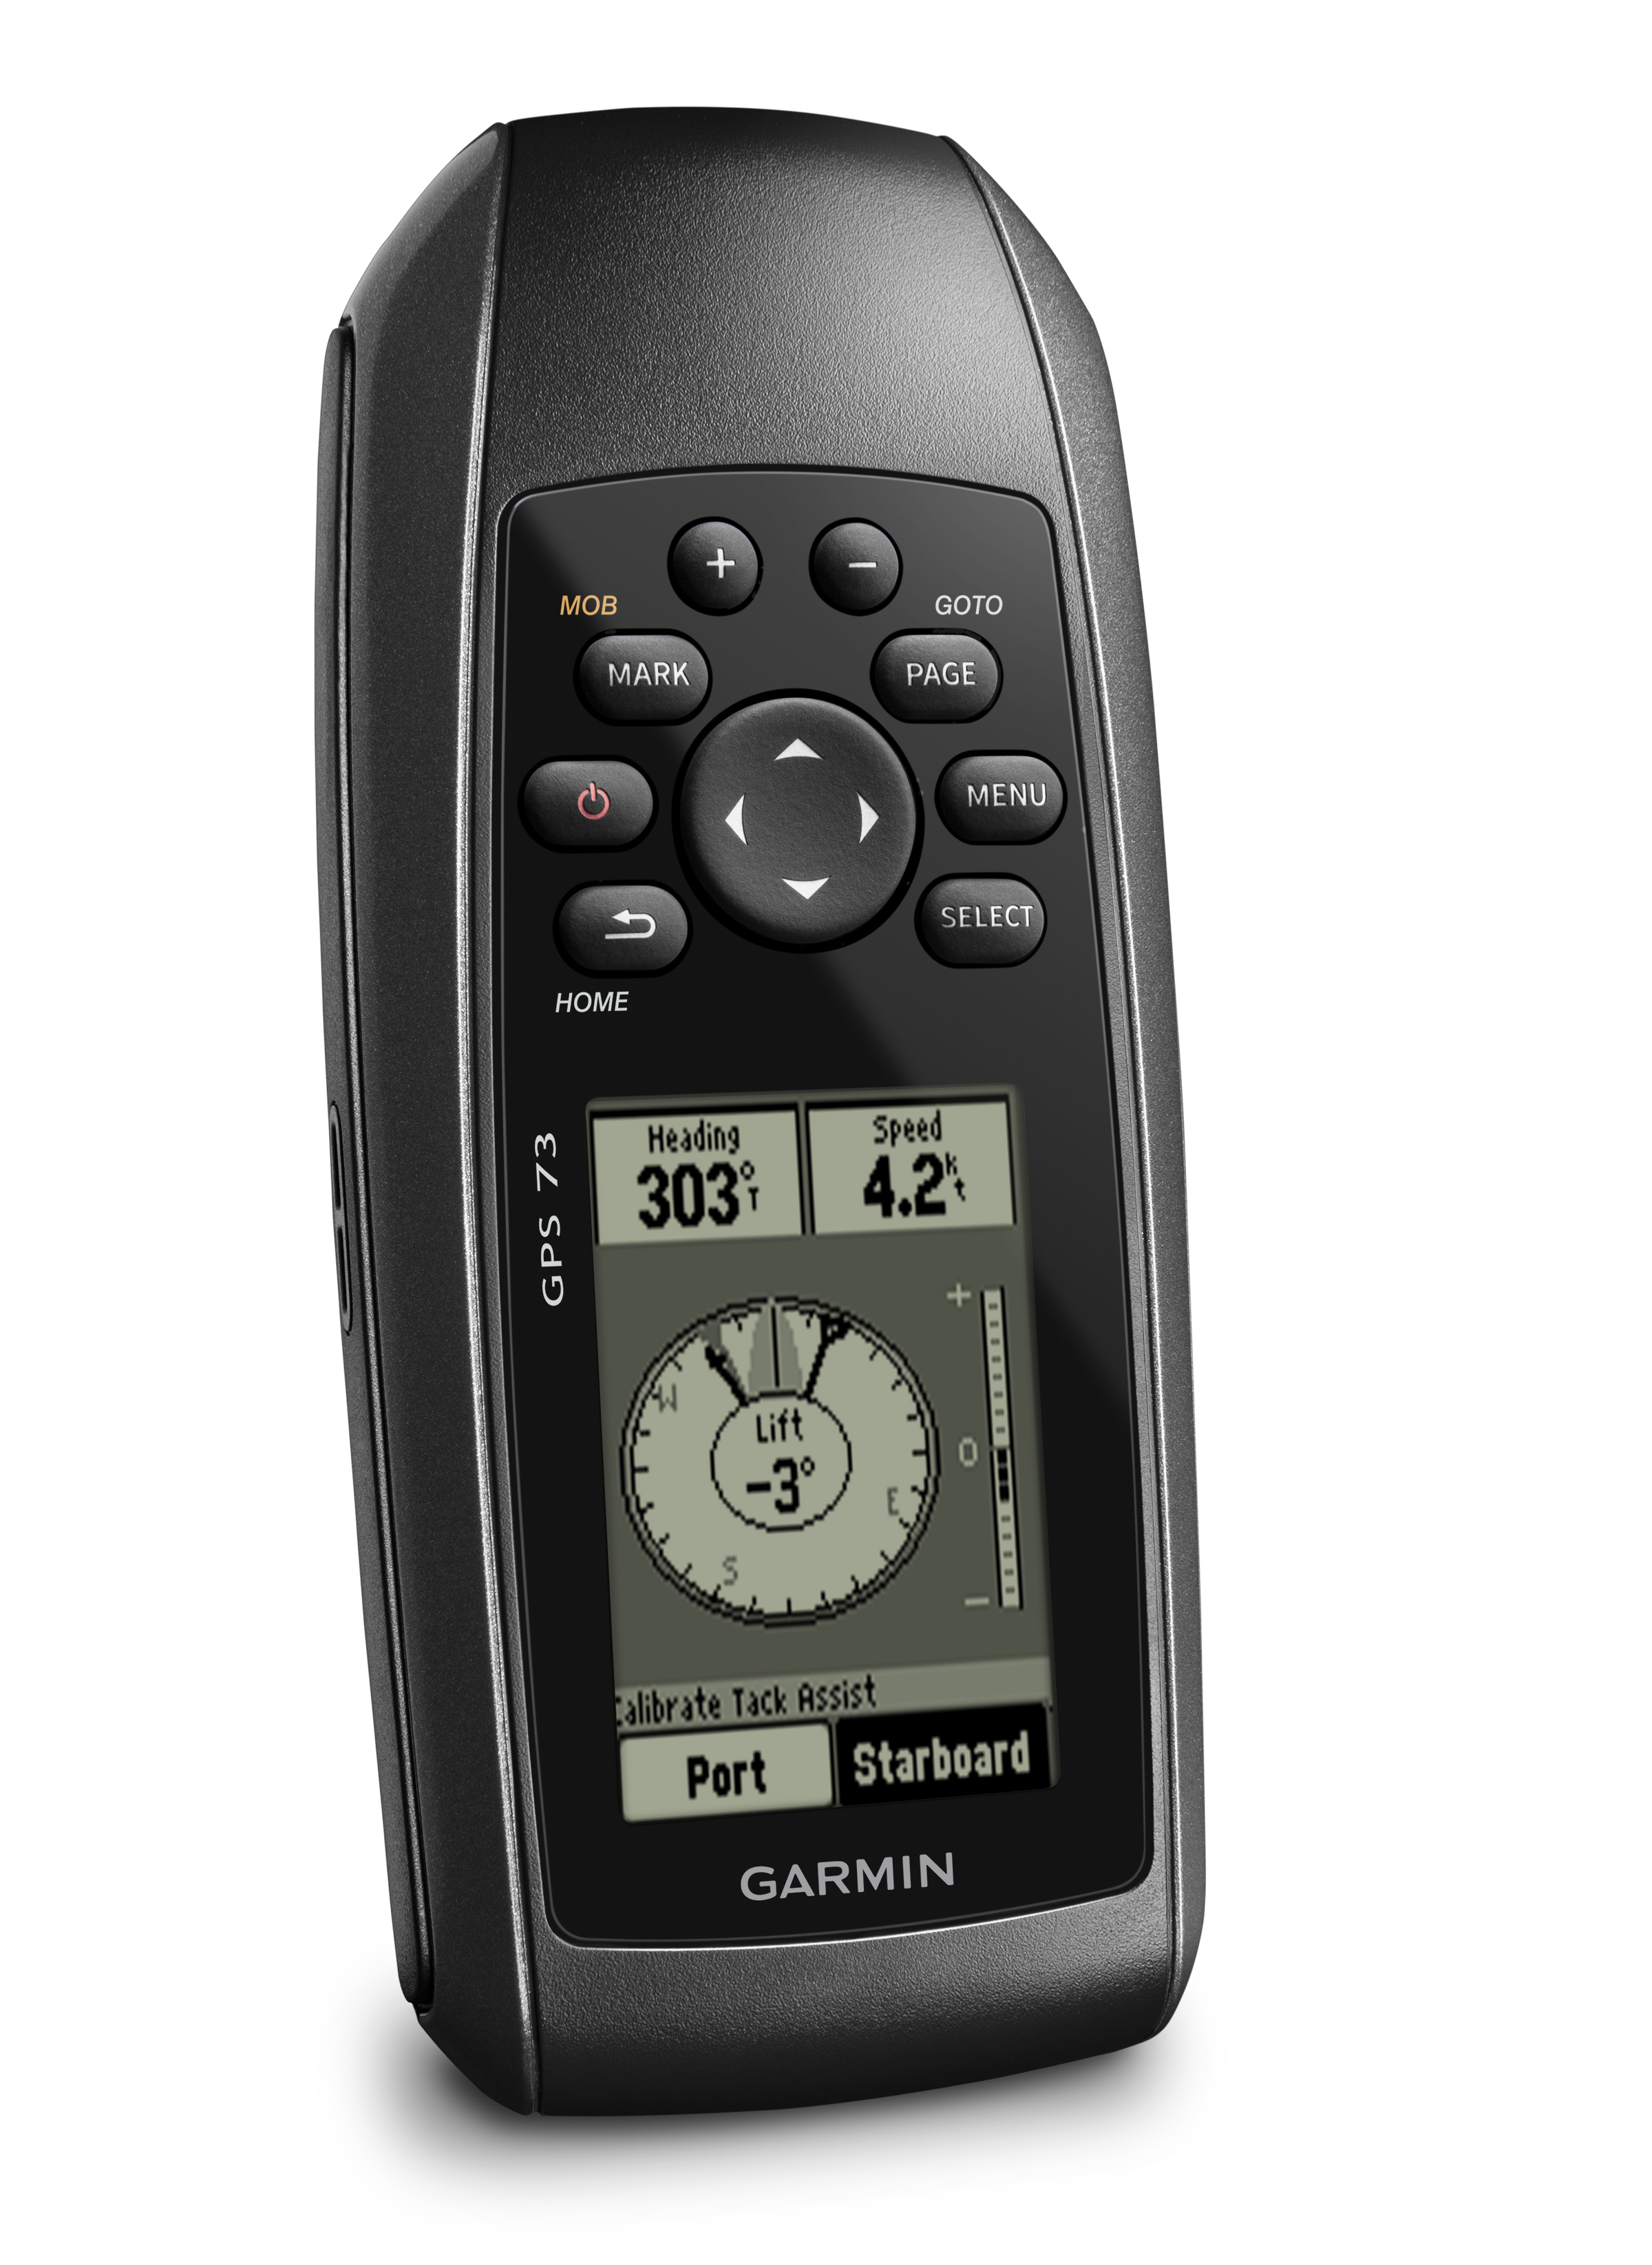 garmin gps 73 neues marine handger t navigation gps blitzer pois. Black Bedroom Furniture Sets. Home Design Ideas